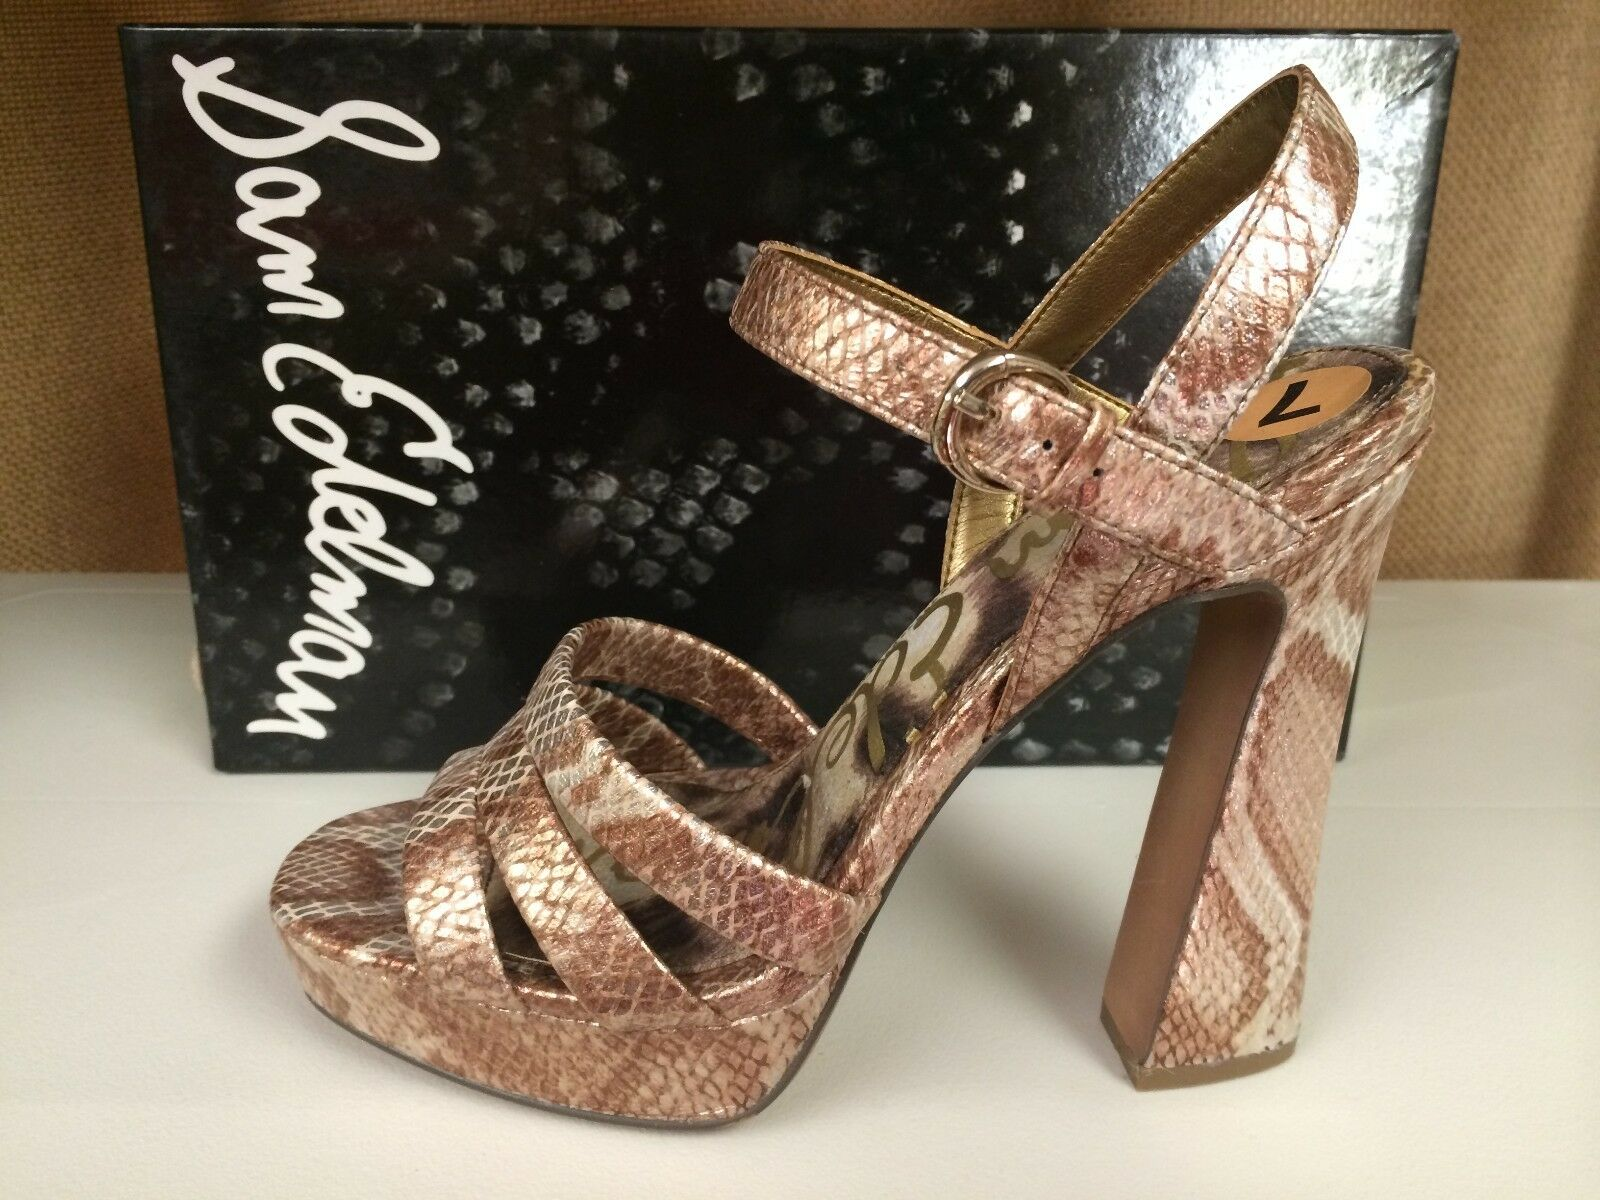 Sam Edelman Taryn Women's Peep Open Toe Sandals Leather Heels shoes Snake Print